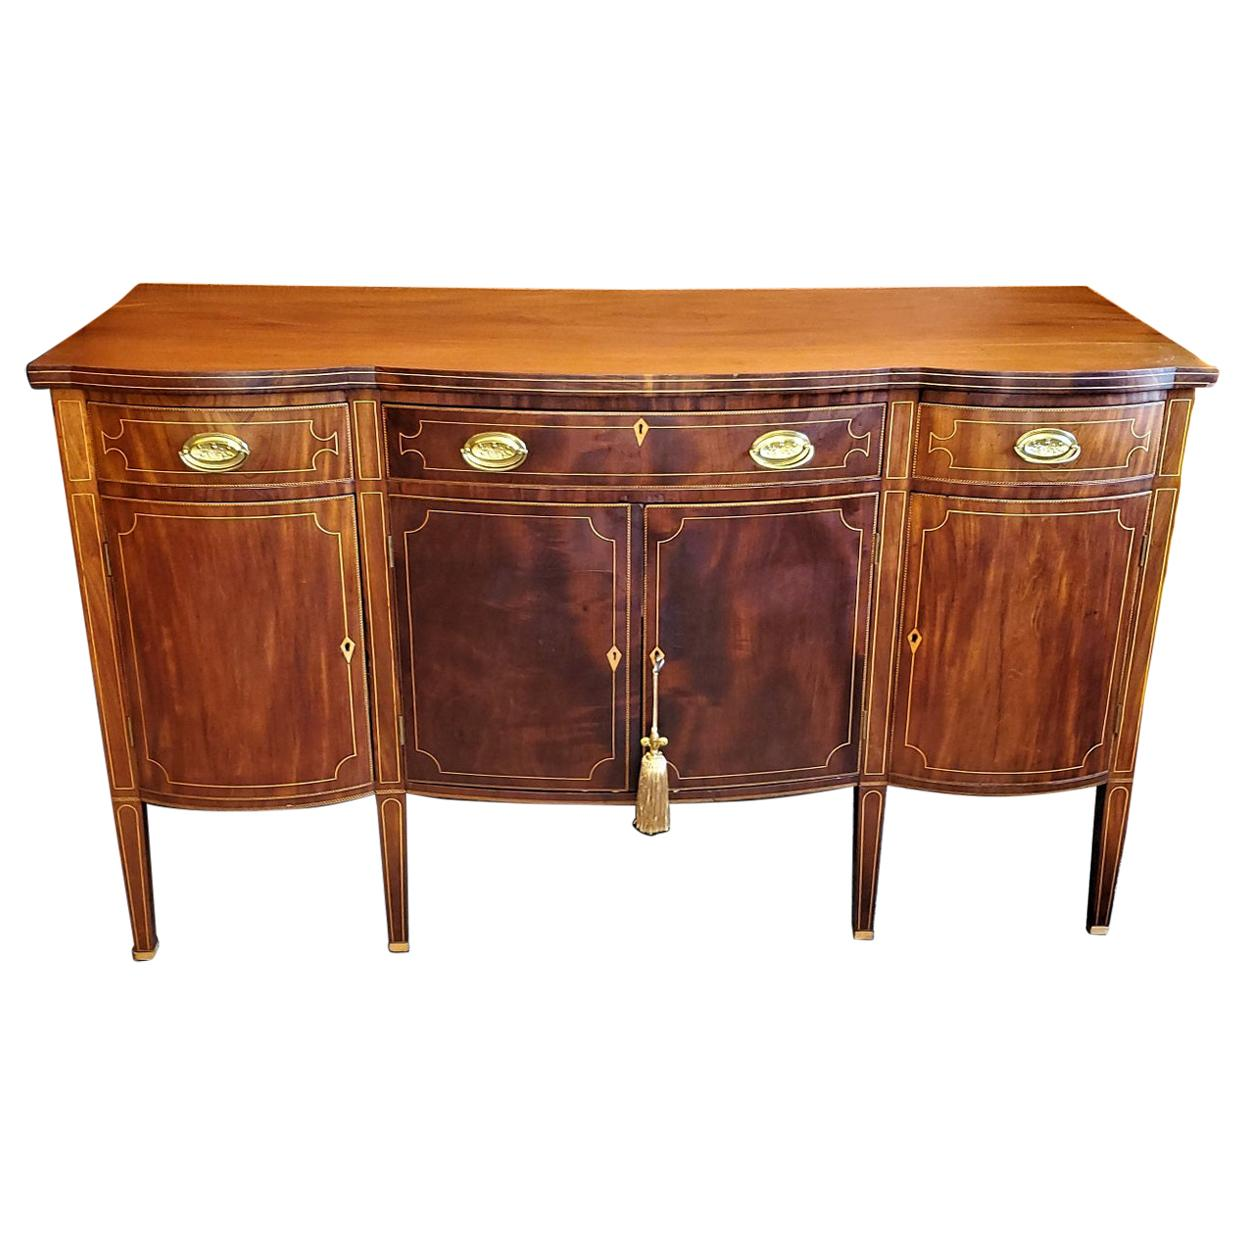 Early 19th Century American Sheraton Sideboard Attributable to Duncan Phyfe